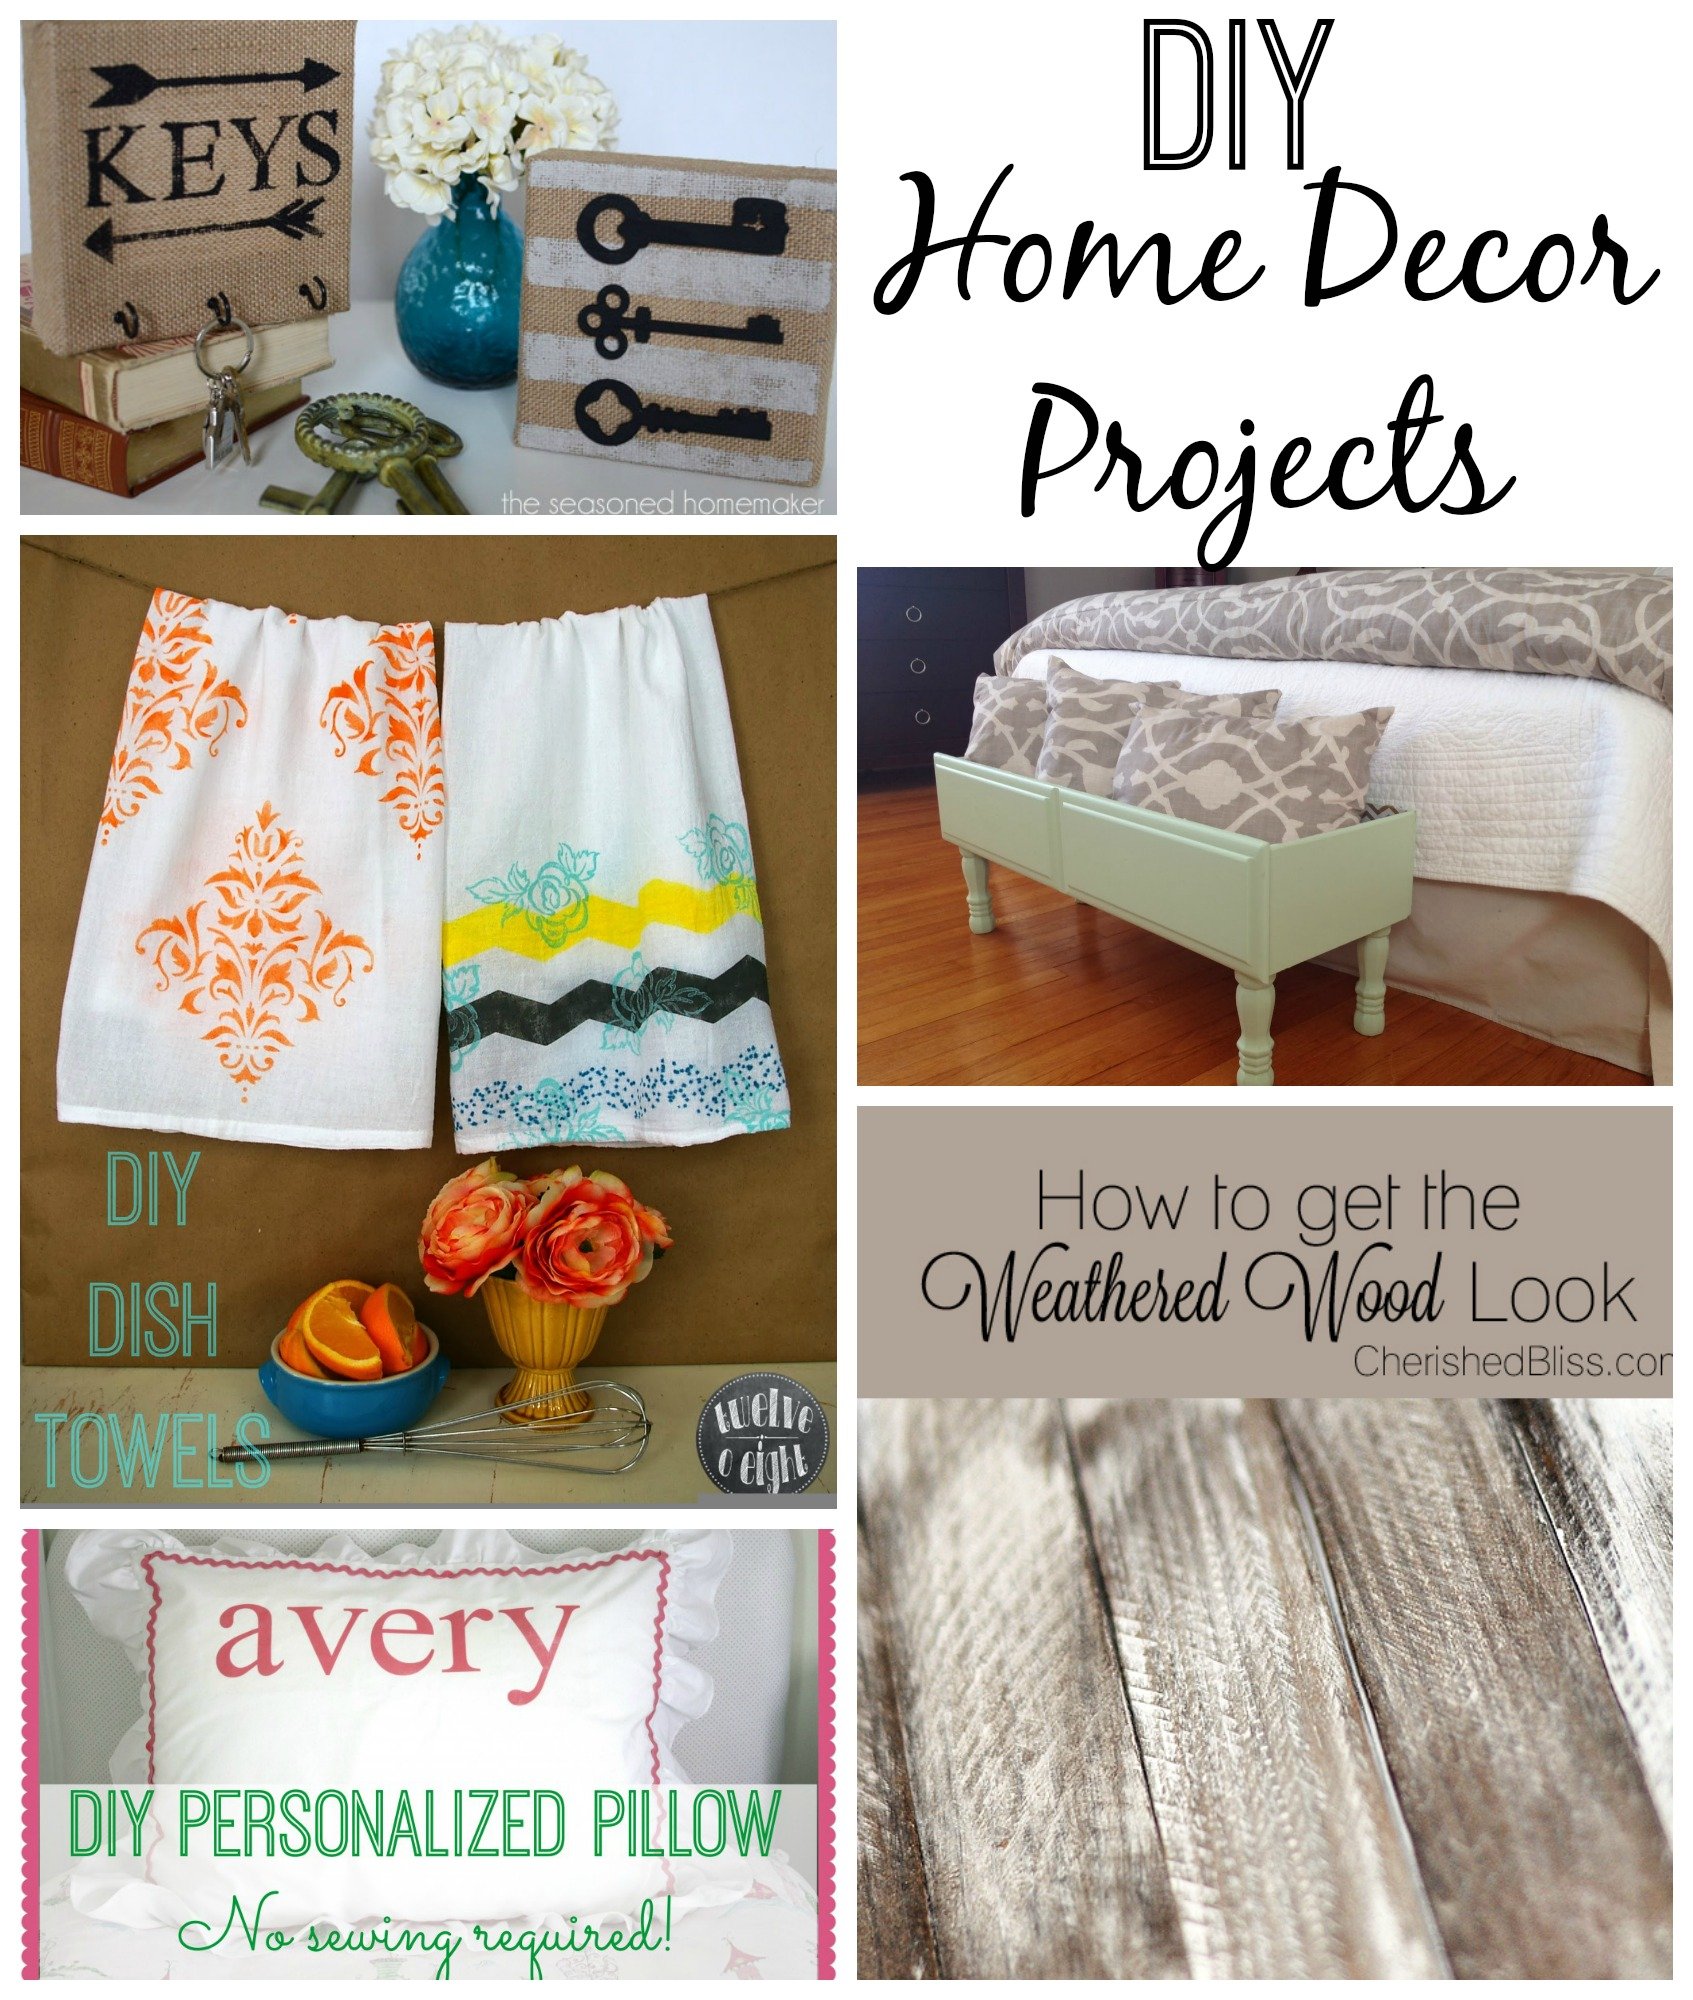 Home Diy: DIY-Home-Decor-Projects.jpg